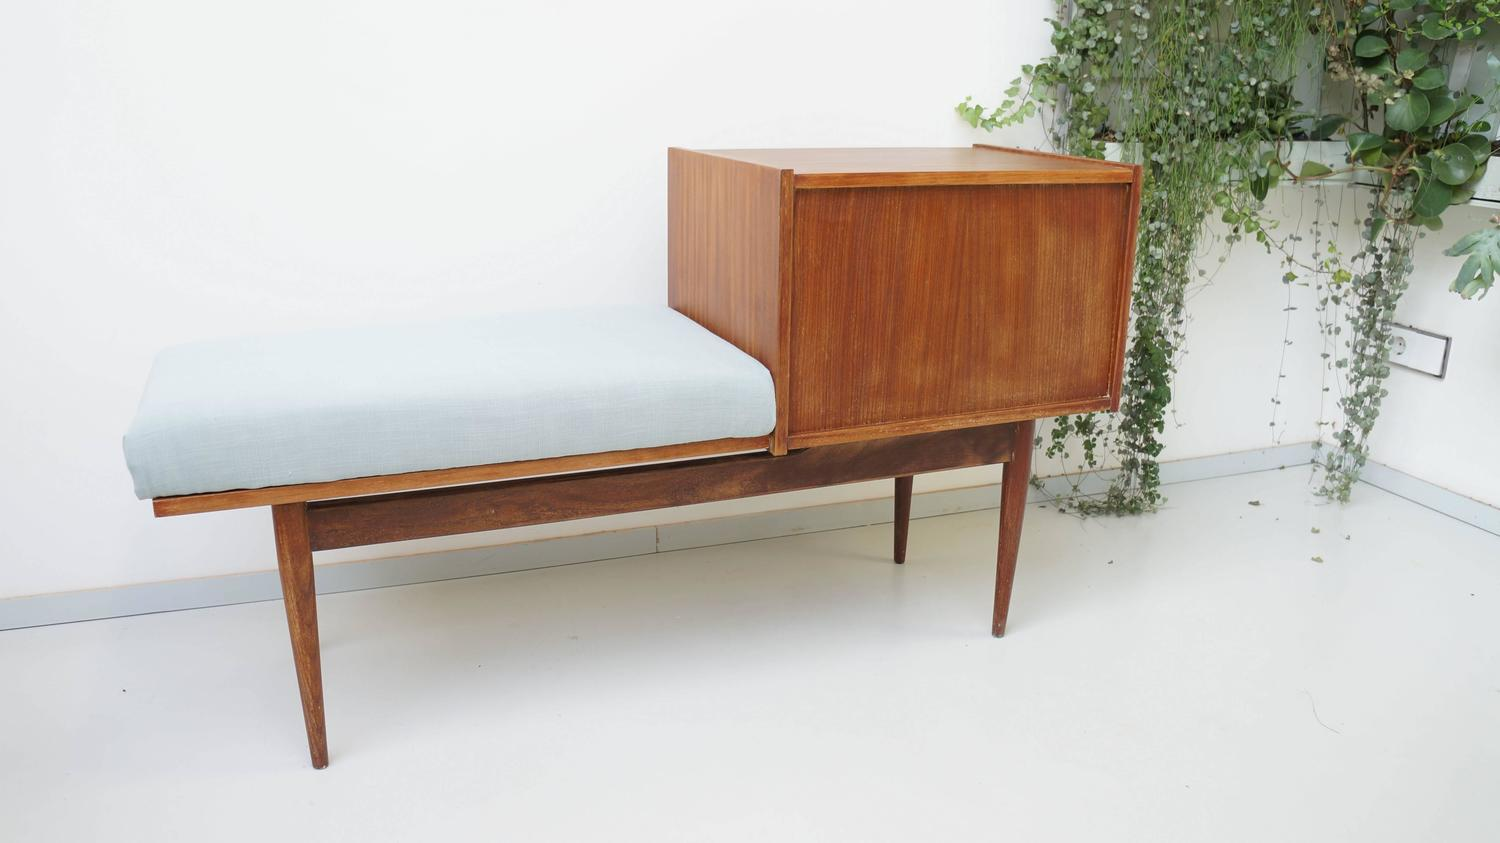 Vintage Mid Century Telephone Cabinet Bench 1950s At 1stdibs